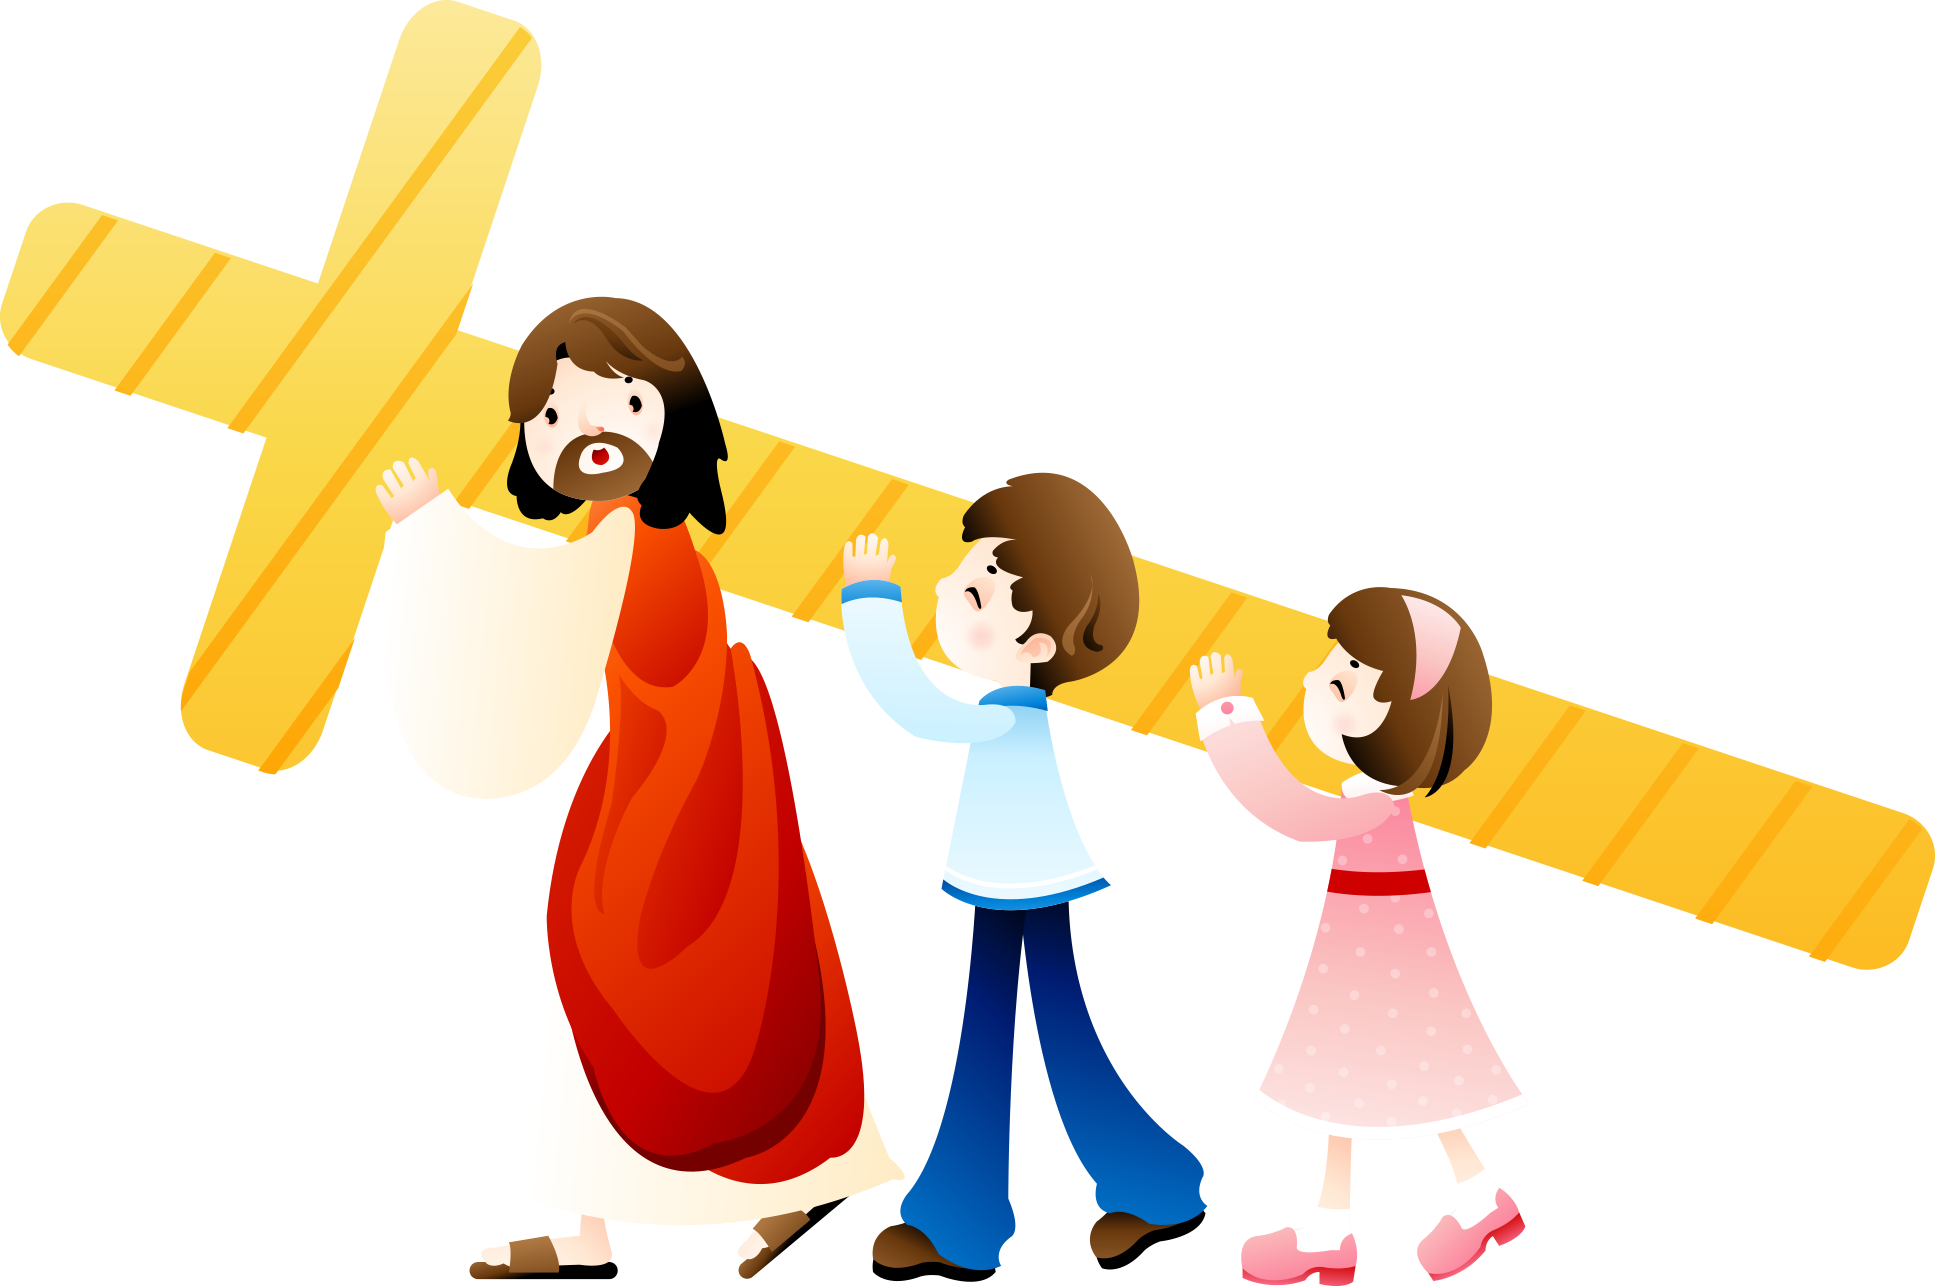 Bible Cross Jesus Holding Child Christianity PNG Image